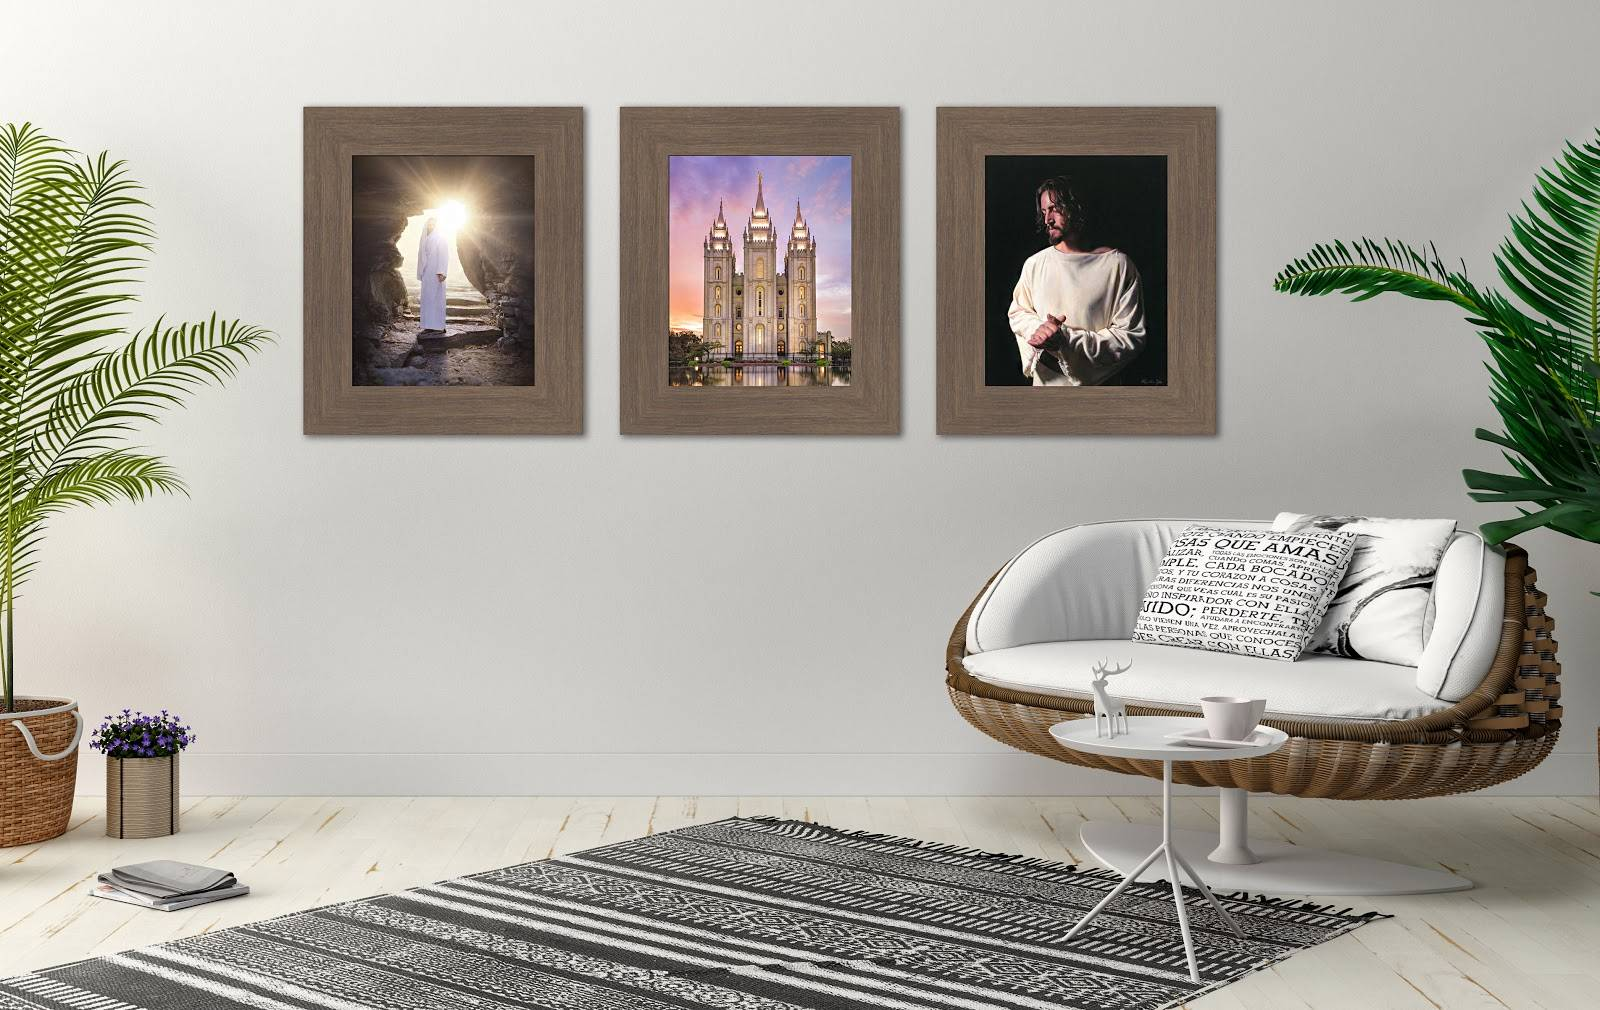 Environment shot of three LDS paintings displayed in a horizontal pattern.